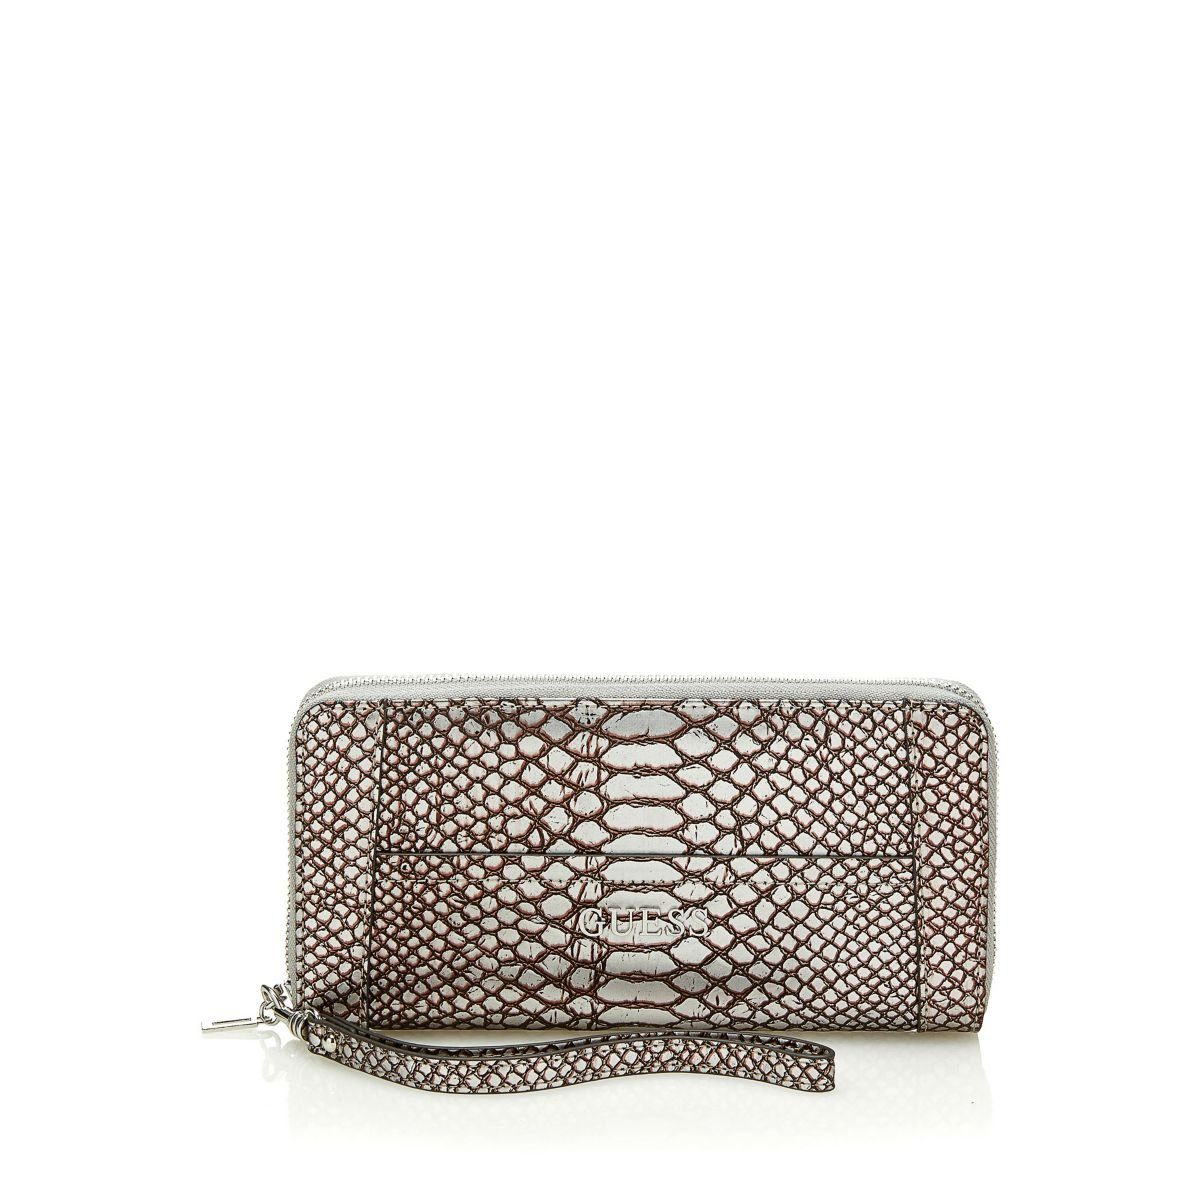 Guess PORTEMONN. DELANEY PYTHON METALLIC